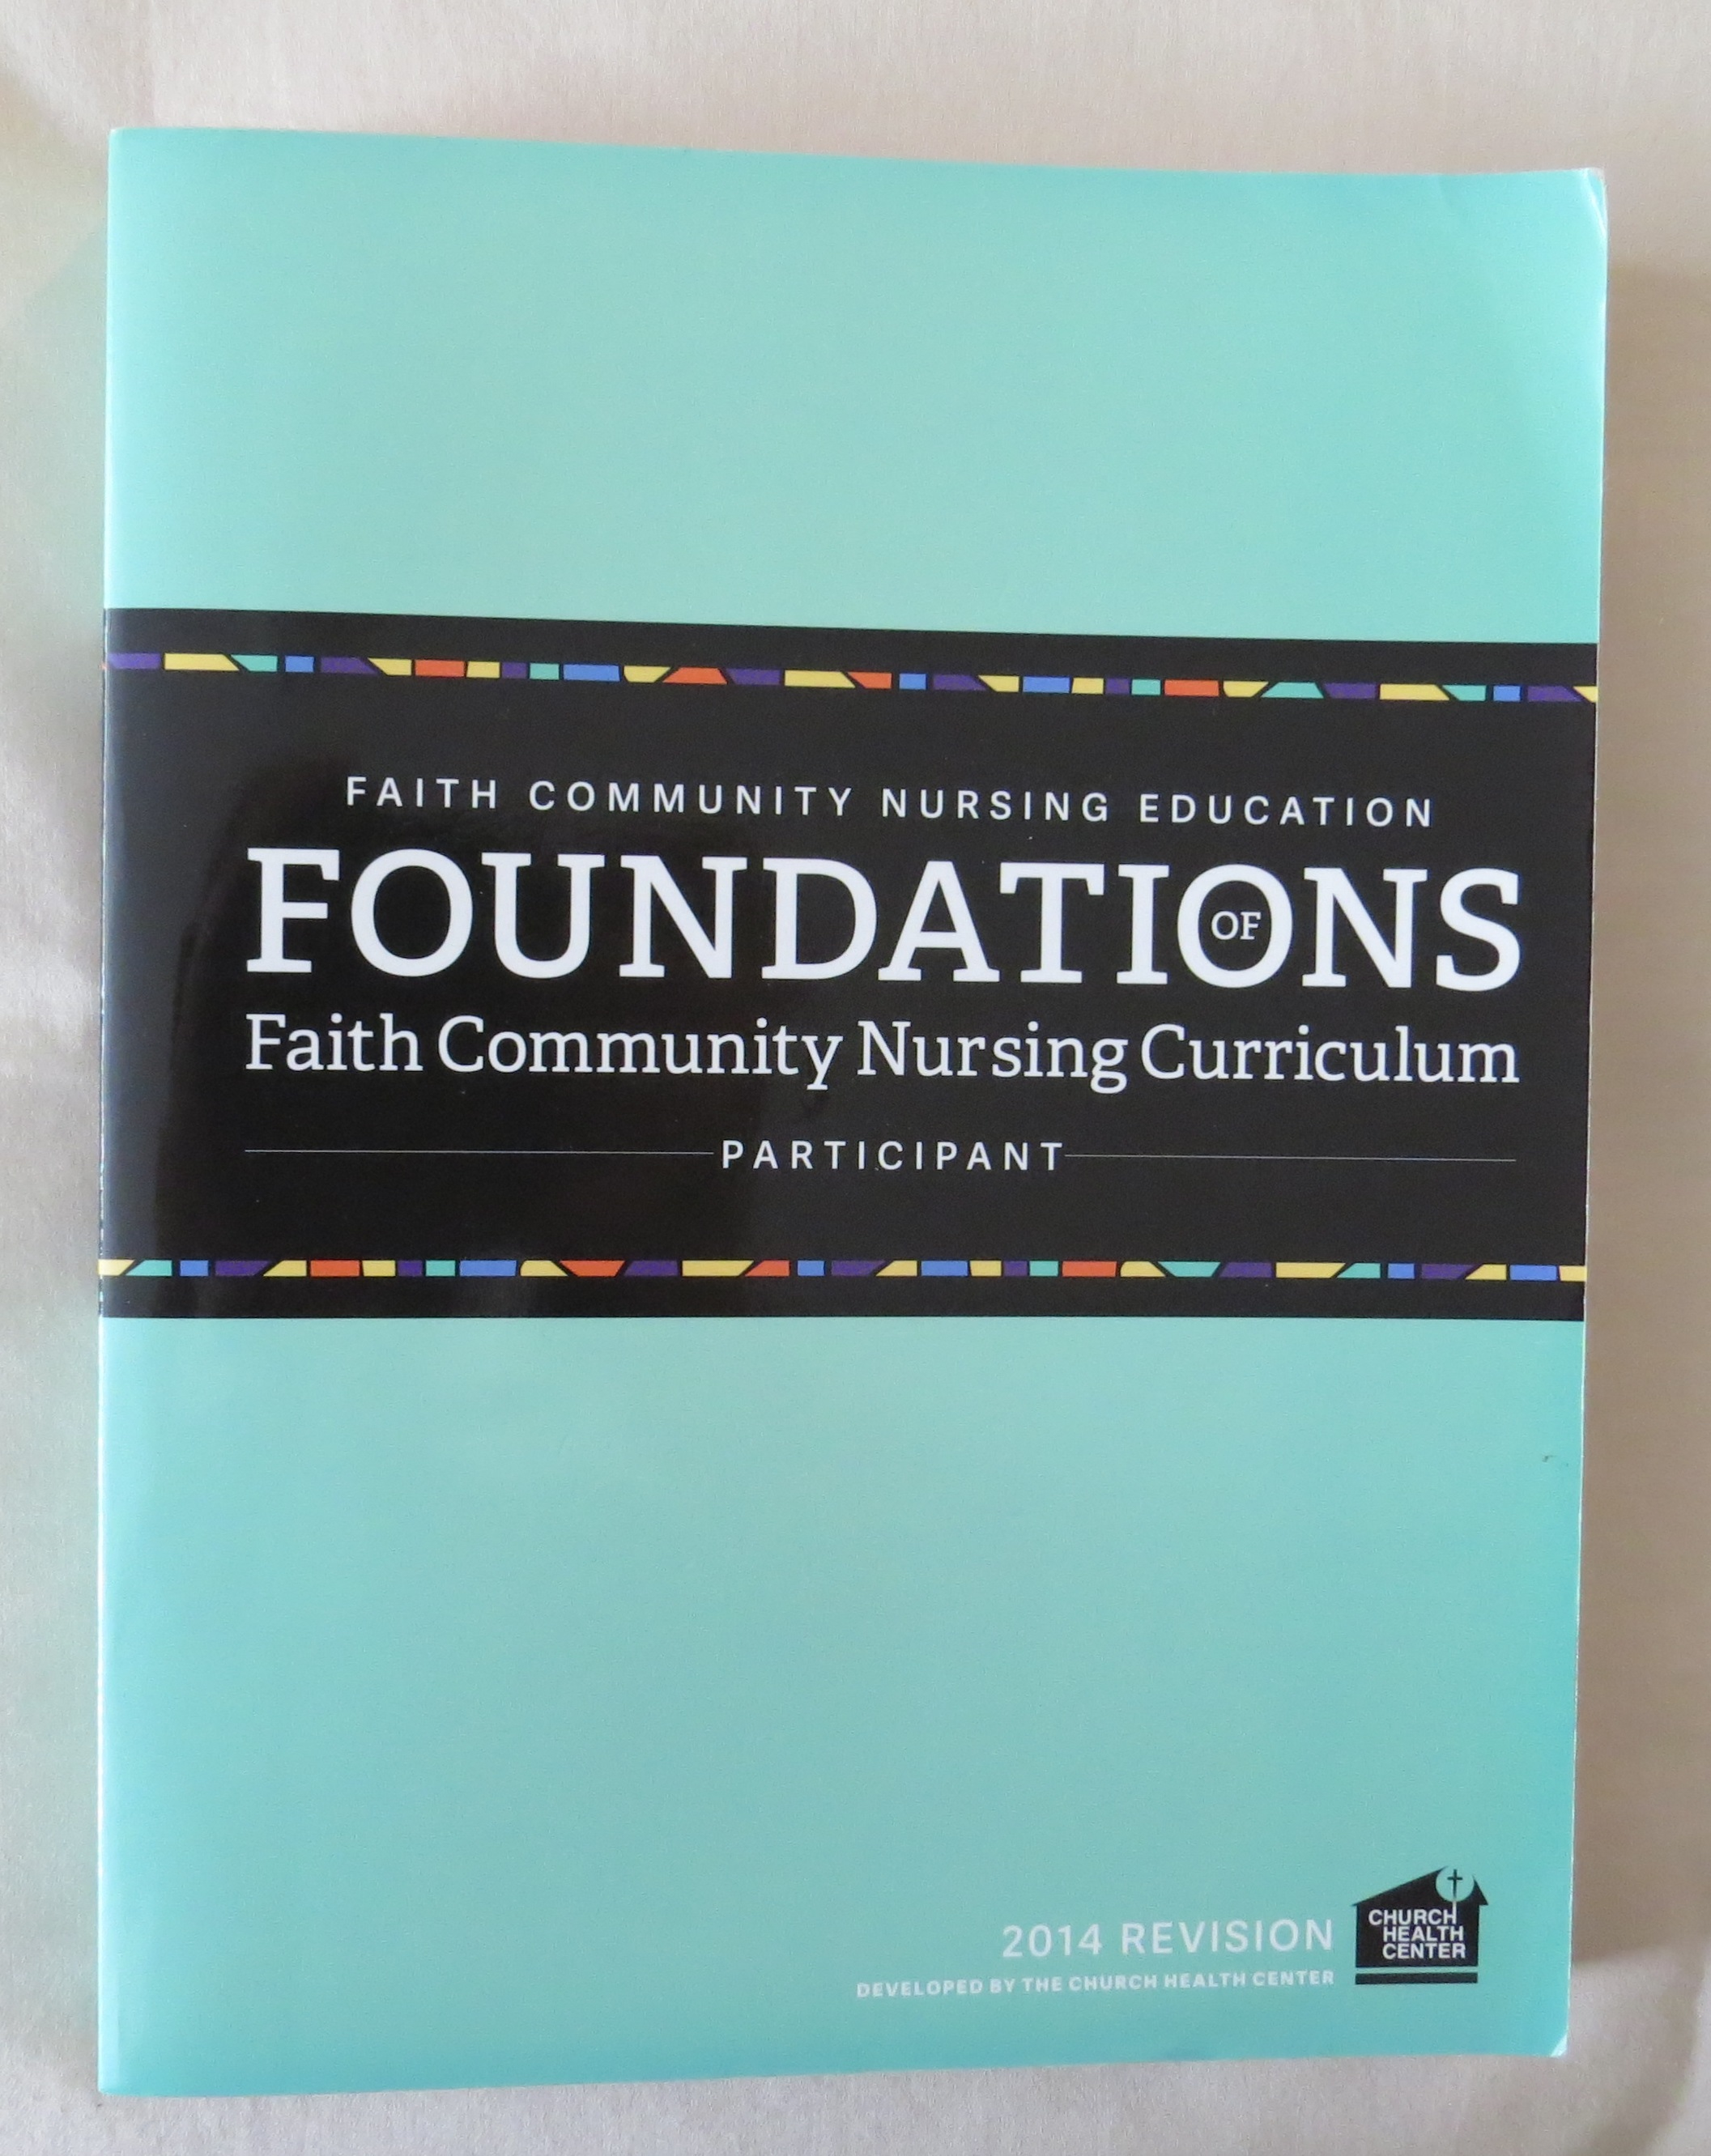 foundation of nursing education Nonprofitfactscom is not associated with, endorsed by, or sponsored by nursing education foundation of west virginia and has no official or unofficial affiliation with nursing education foundation of west virginia based on public records.